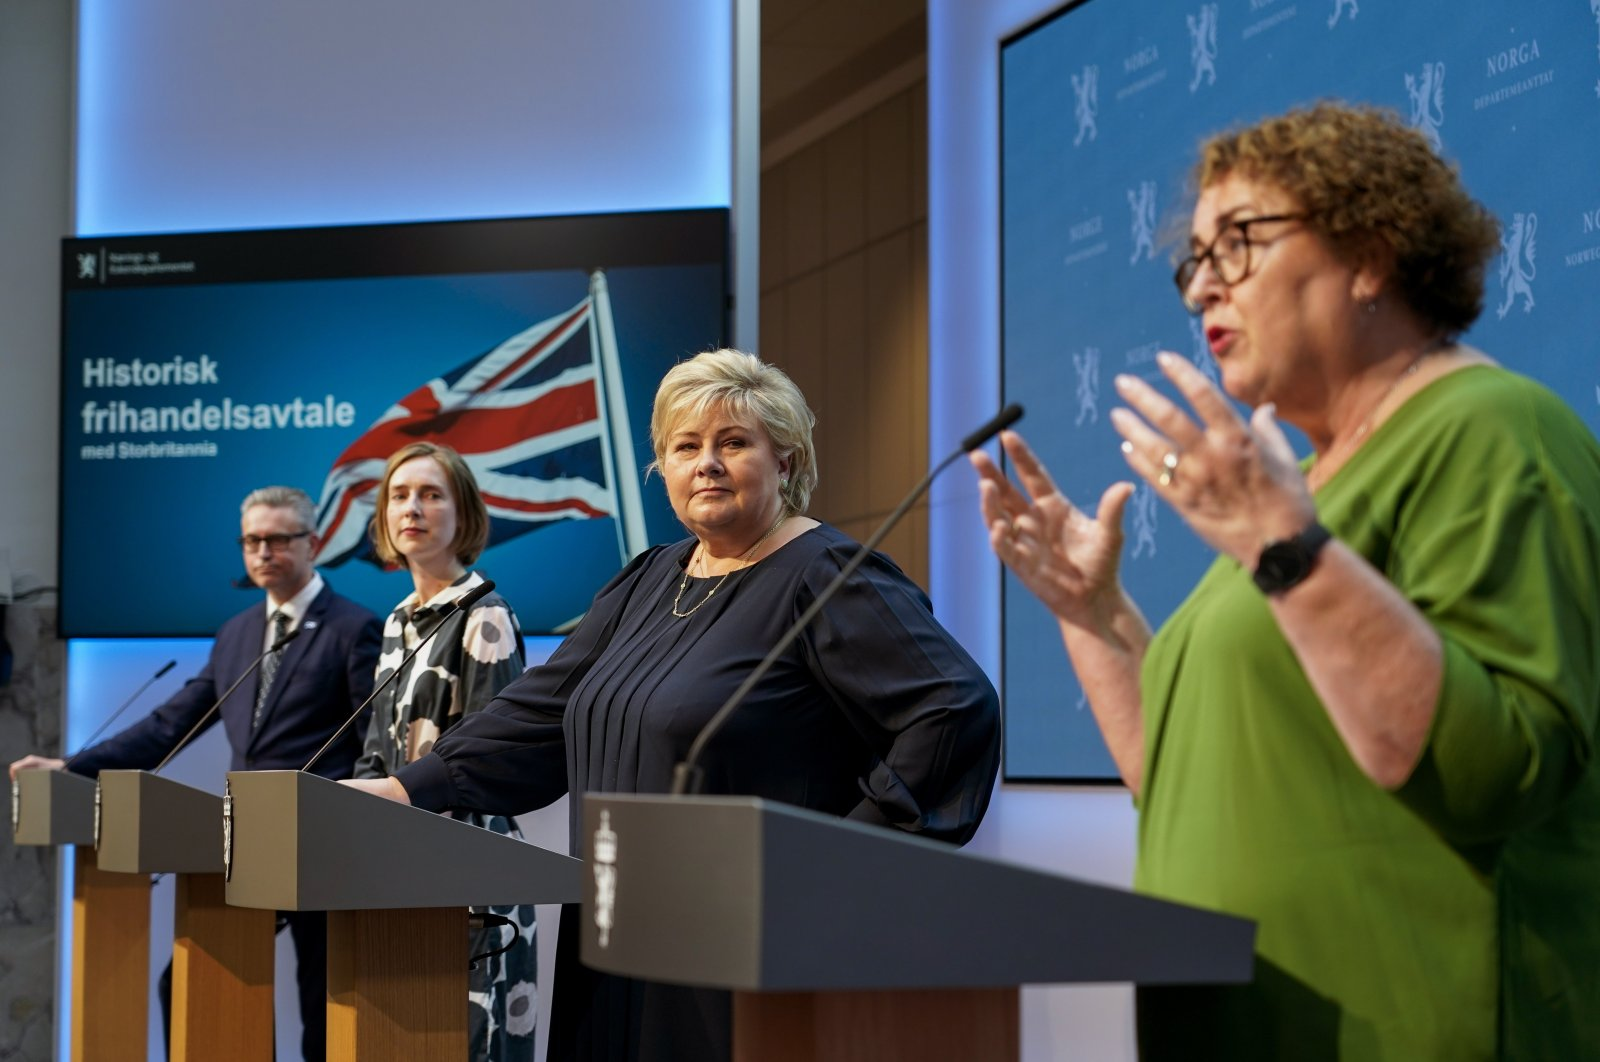 From left, Norway's Minister of Fisheries and Seafood Odd Emil Ingebrigtsen, Minister of Trade and Industry Iselin Nybo and Prime Minister Erna Solberg listen to Minister of Agriculture and Food Olaug Bollestad, during a press conference on the status of free trade negotiations with the United Kingdom, Oslo, Norway, Friday, June 4, 2021. (AP Photo)